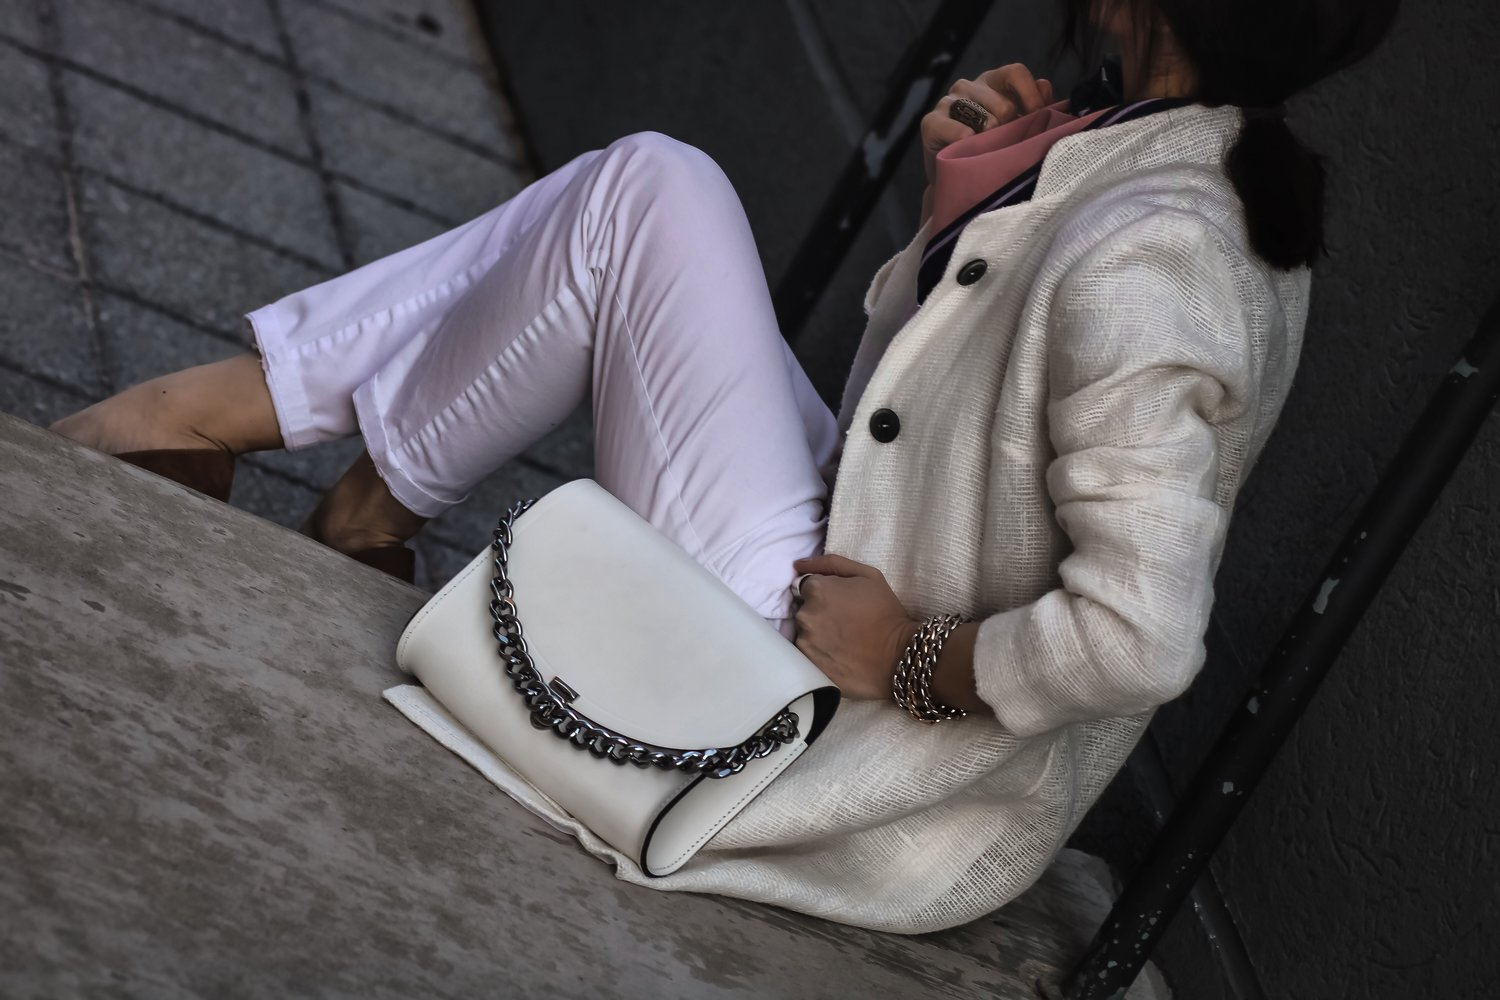 Isabel-Alexander-white-denim-coat-oversized-chain-bag-details